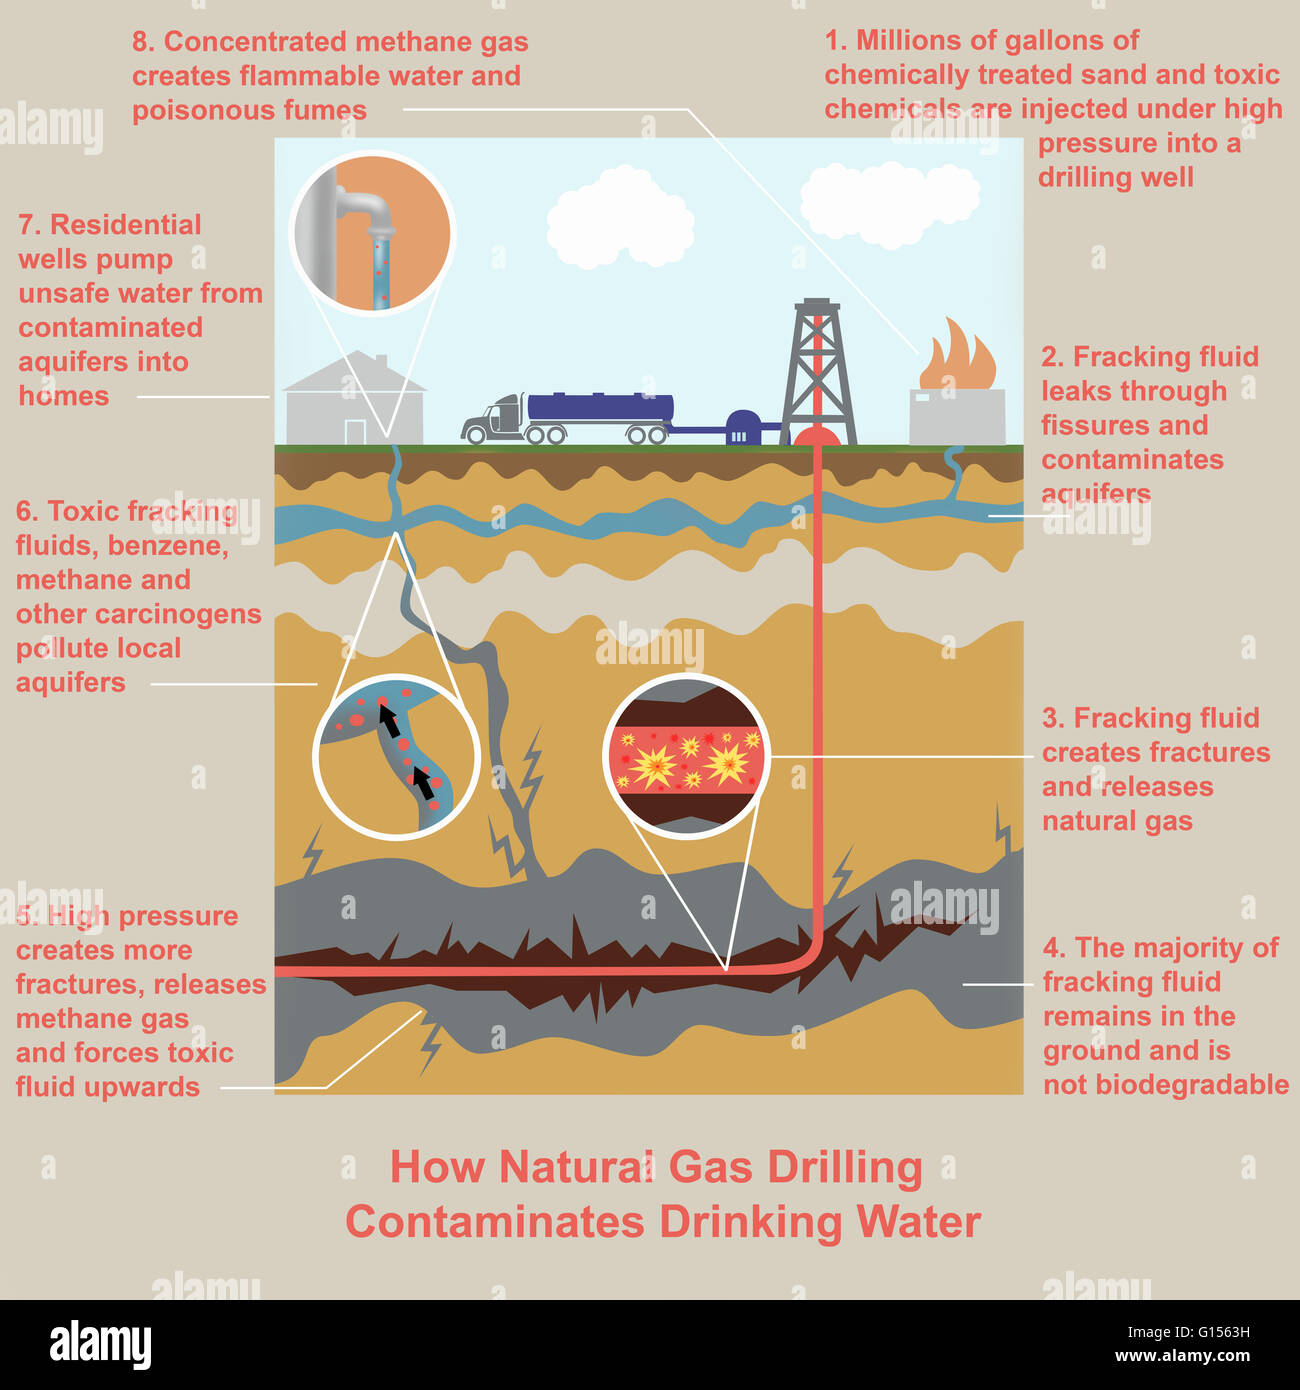 fracking for natural gas essay Fracking and water contamination name: university: course title: professor: date due: fracking and water contamination introduction fracking is the process of natural gas mining in which streams of water and certain chemicals are pumped at high pressures into the underground rocks containing the natural gas and petroleum to force the gas to the surface, from where it can be collected.